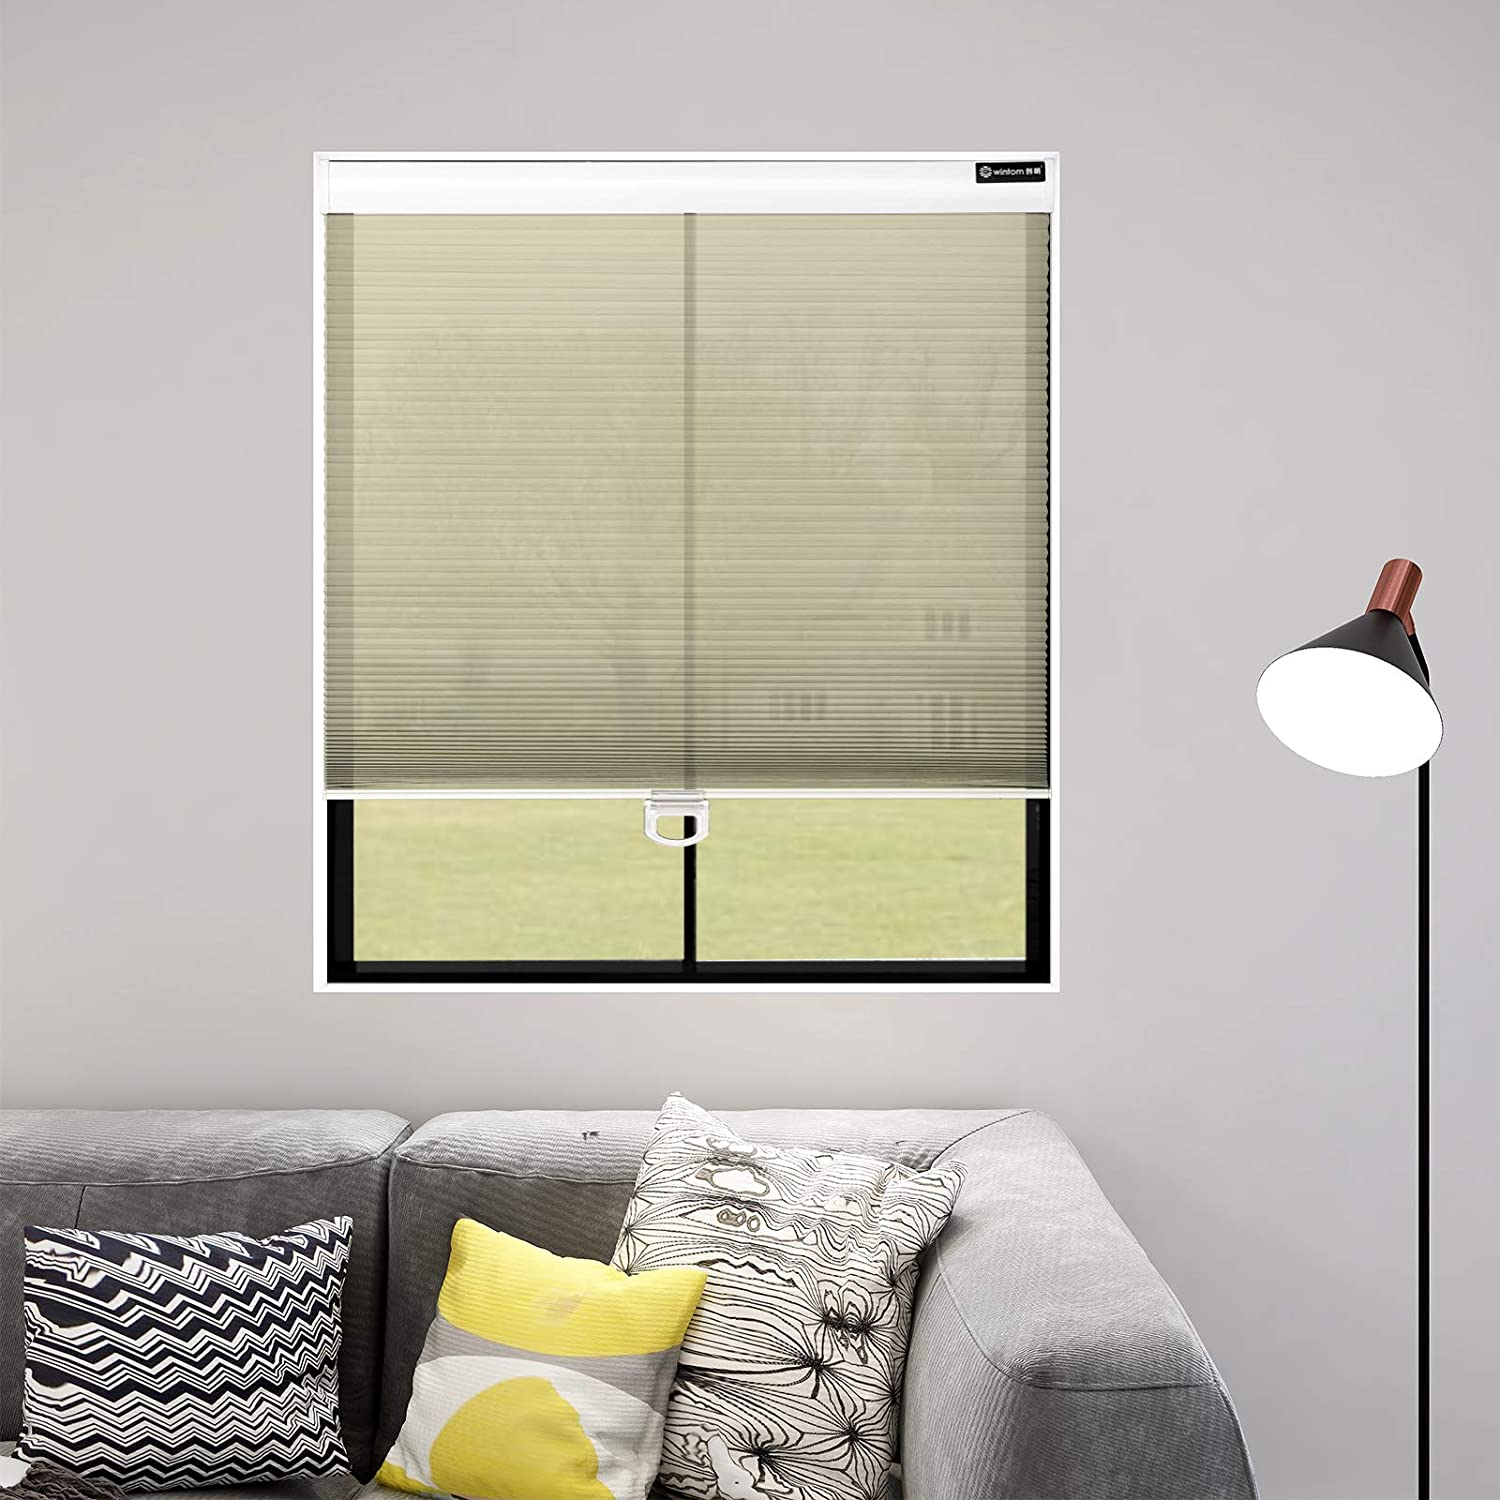 Didoya Light Filter Honeycomb Venetian Blinds,40W x 130H Custom Cut to Size Free-Stop Light Filtering Window Blind for Thermal Noise Reduction for Kitchen Living Room,Office